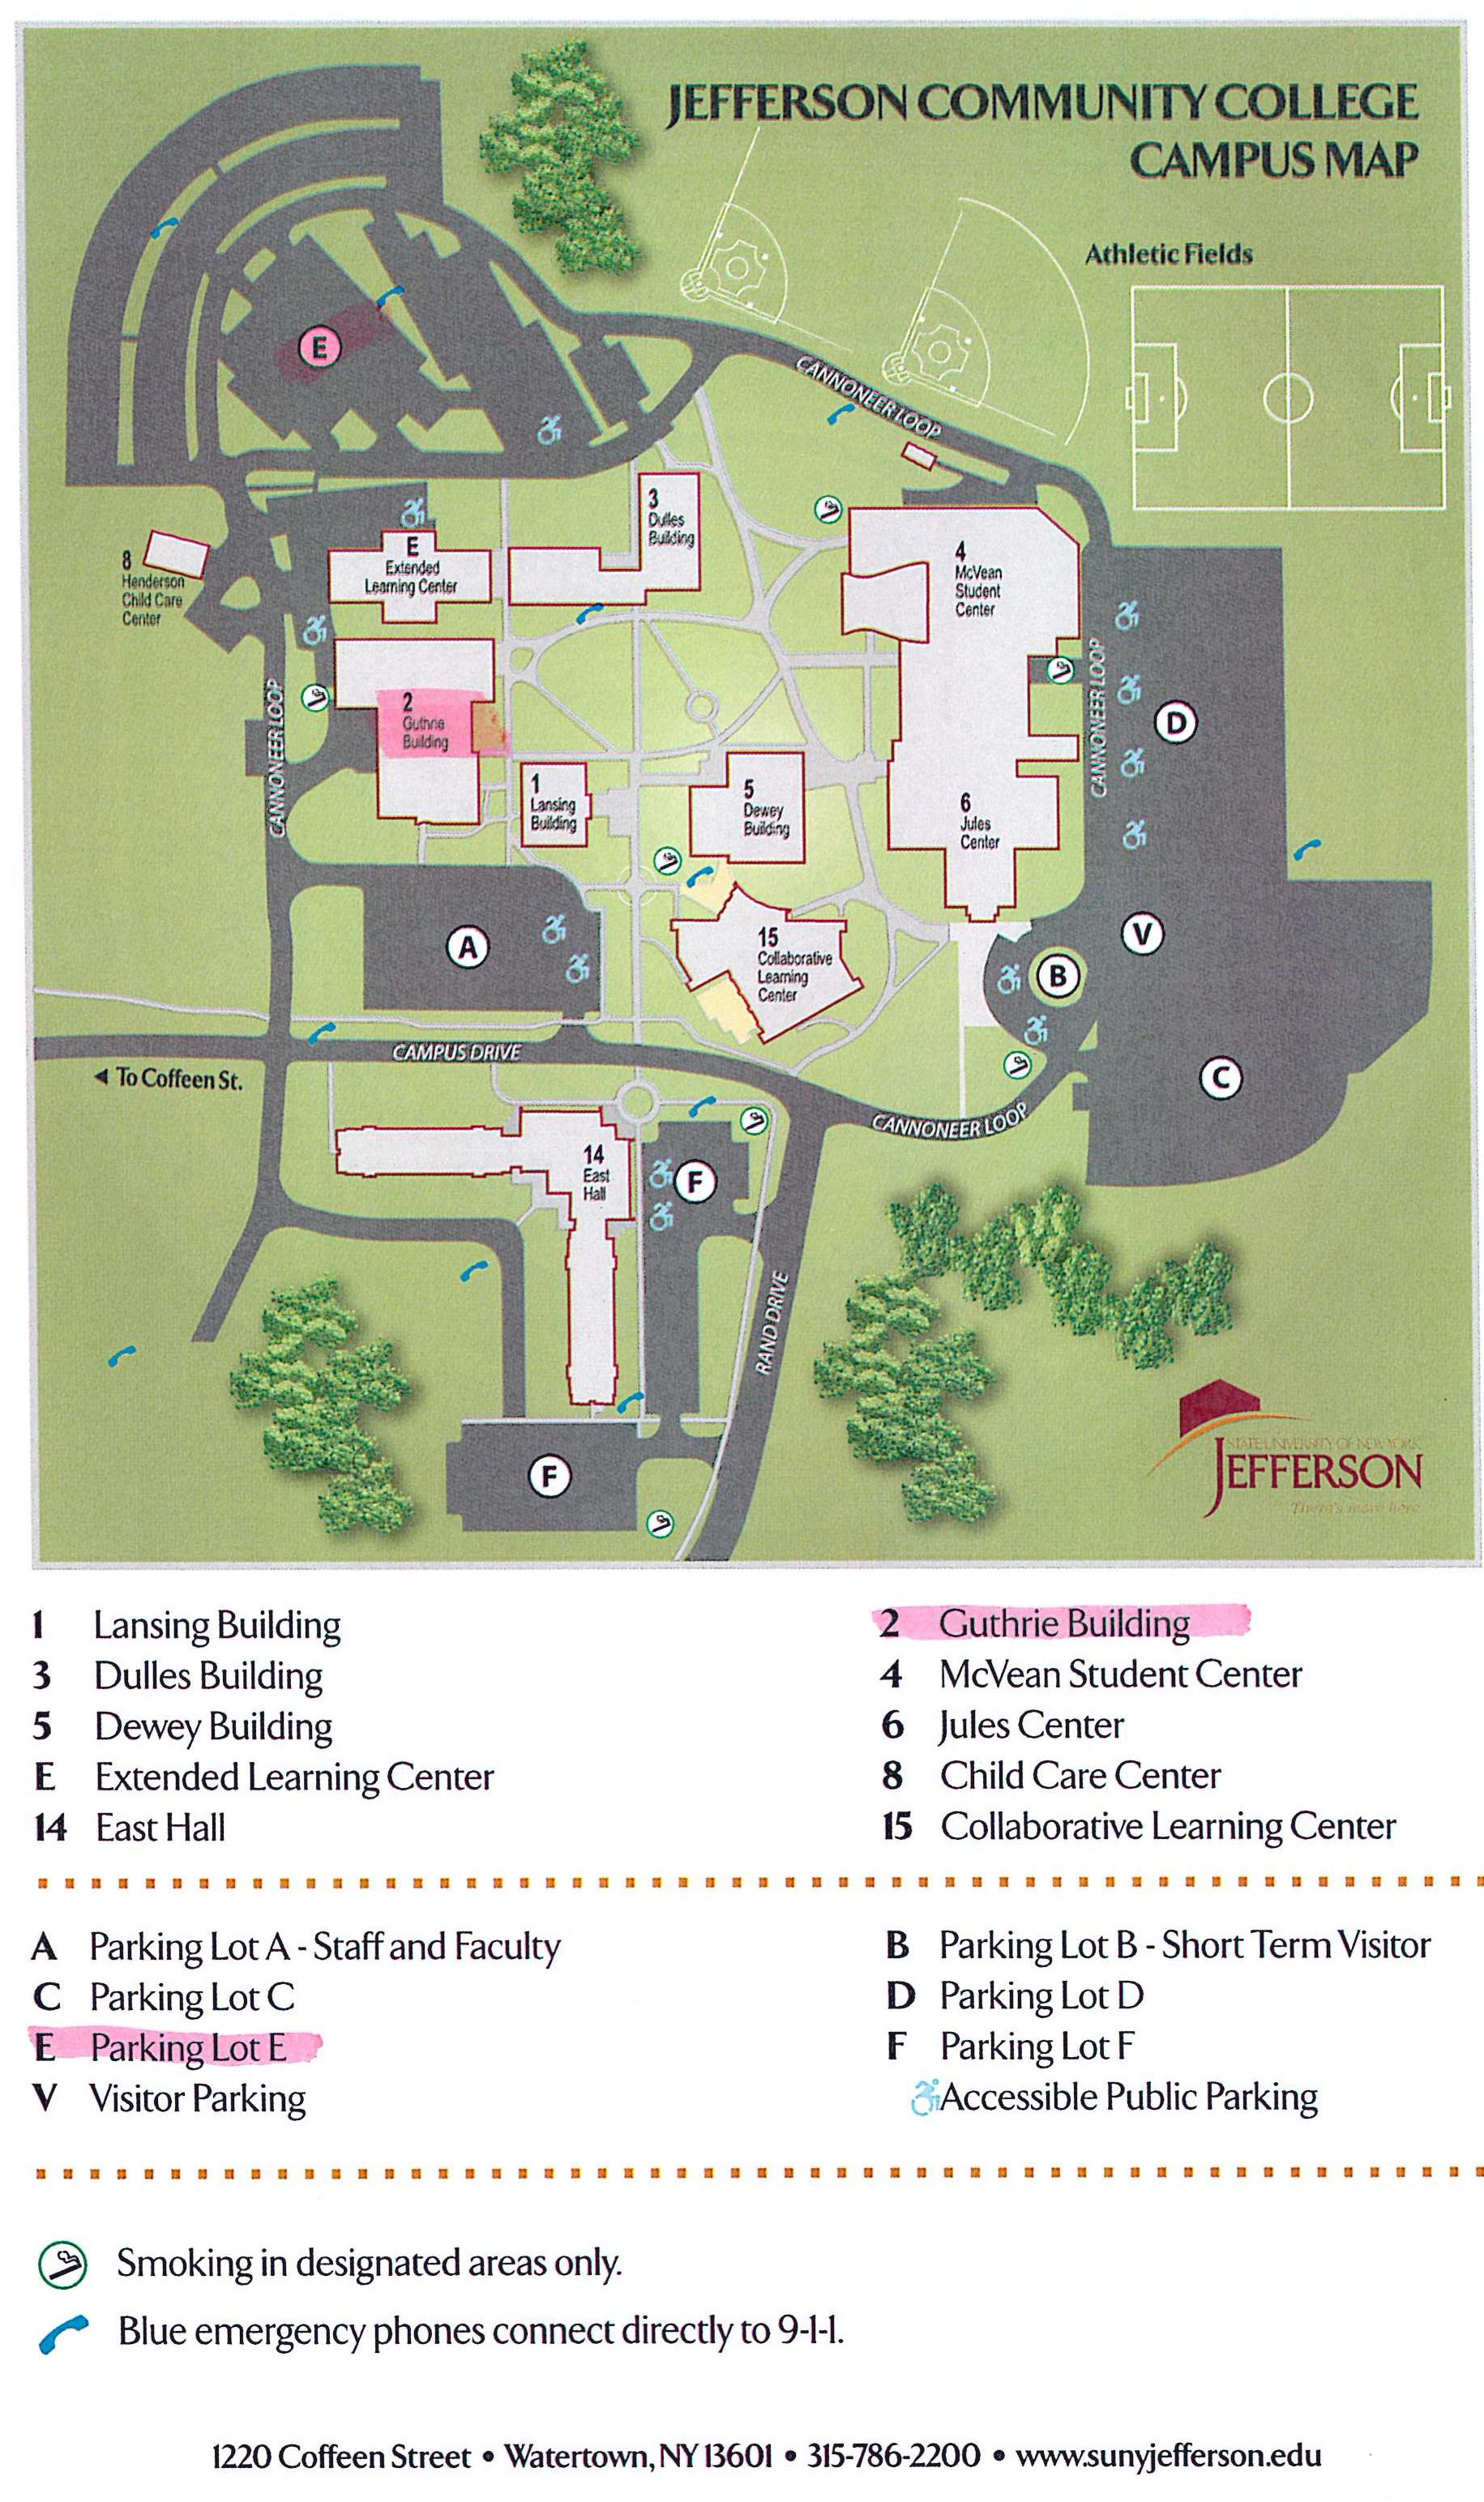 Campus Map - Guthrie Building & Parking